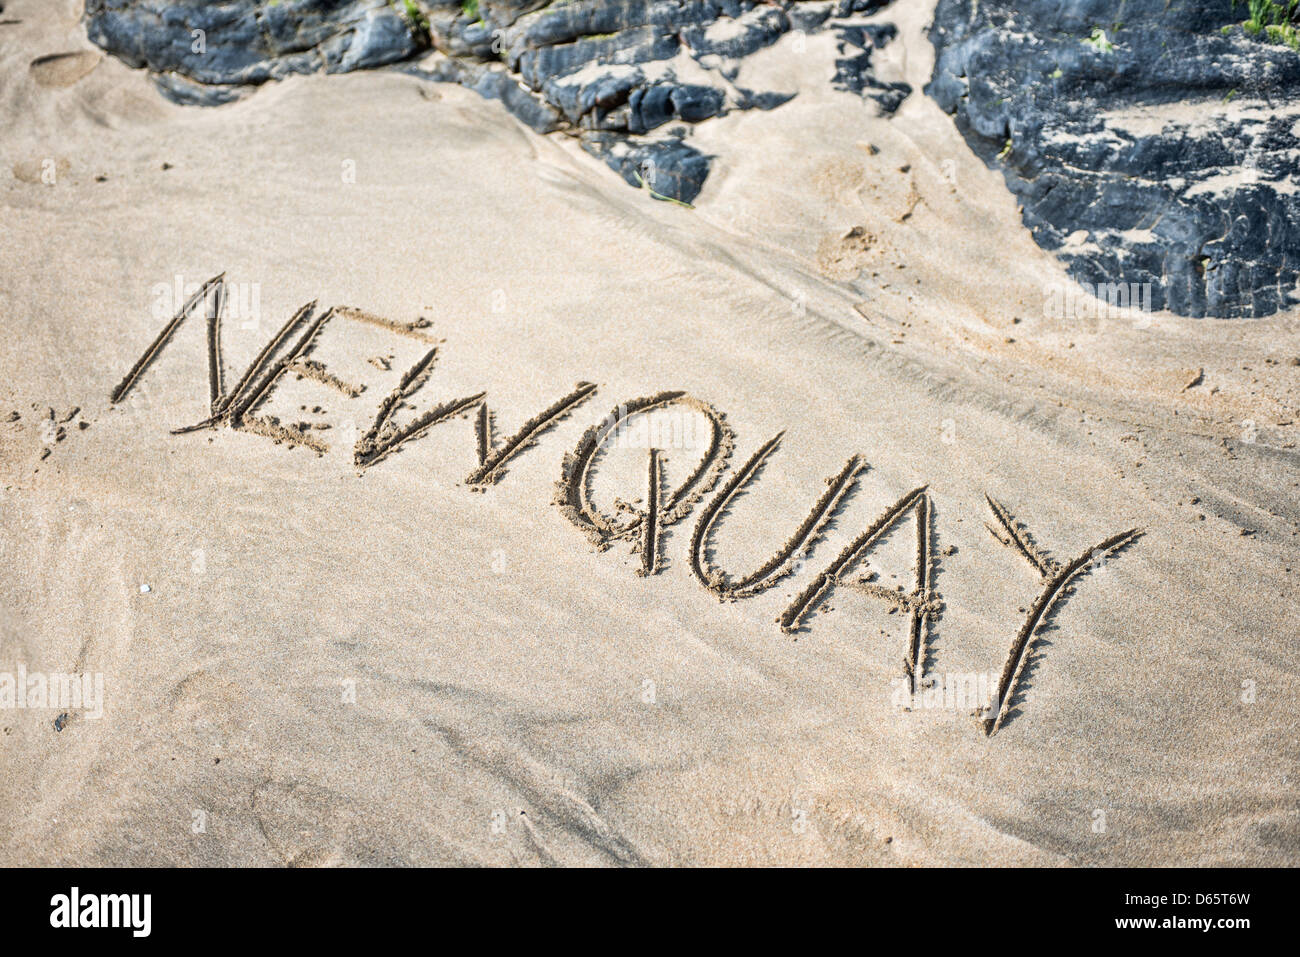 The word Newquay written in sand on a beach - Stock Image